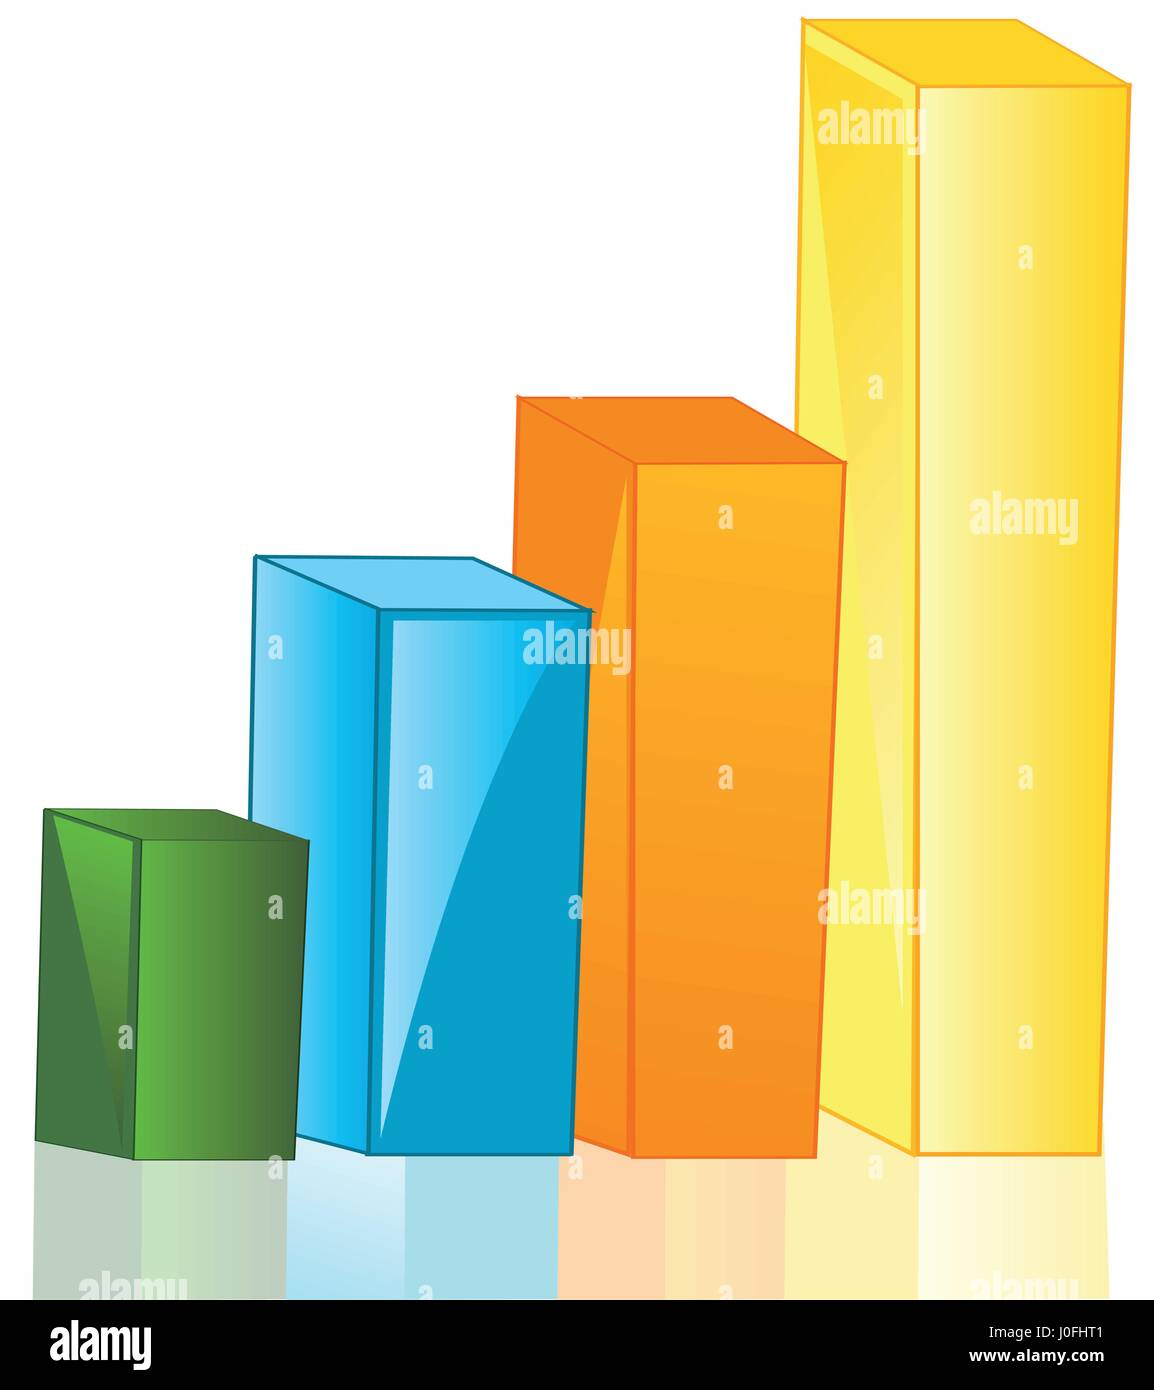 Graph in the manner of square - Stock Image